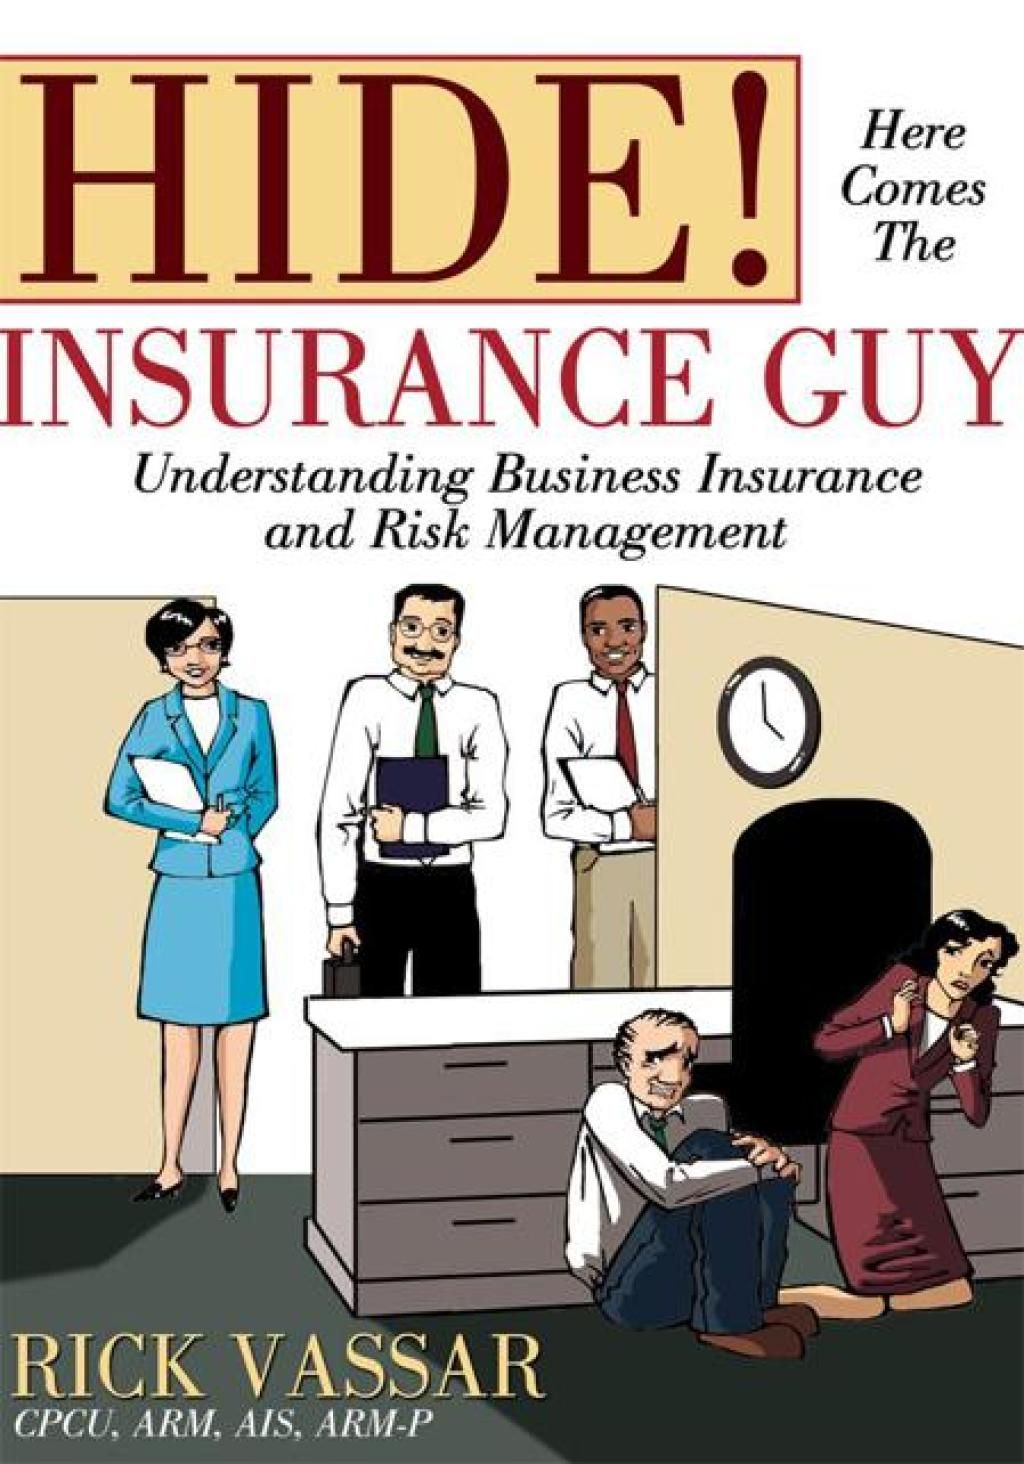 Hide here comes the insurance guy ebook business